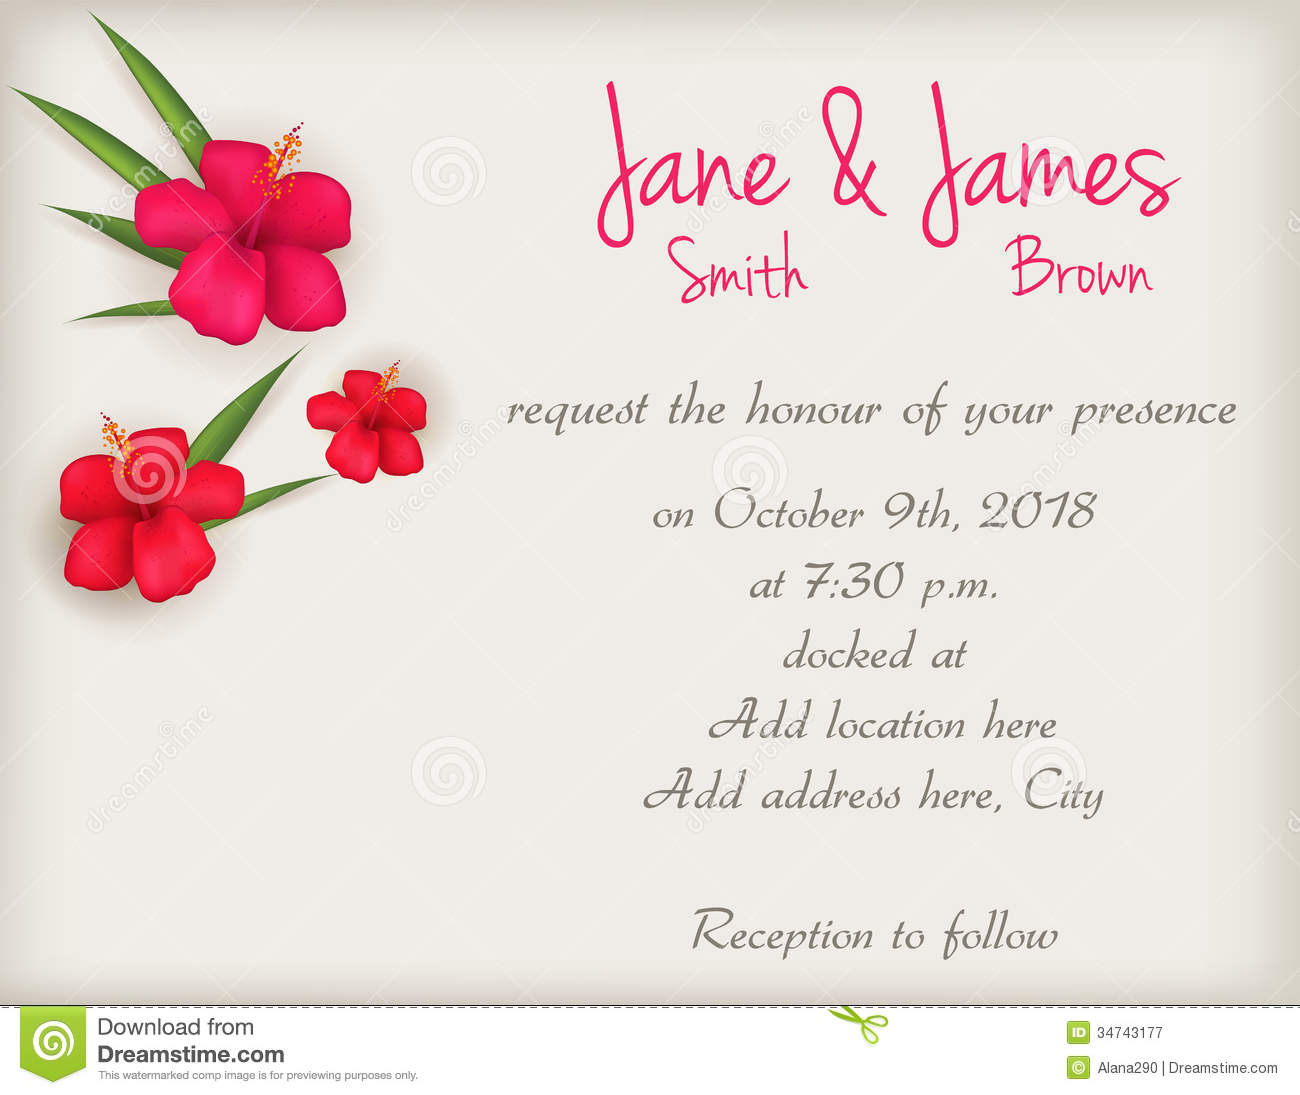 Wedding Invitation With Hibiscus Flowers Stock Vector - Image: 34743177